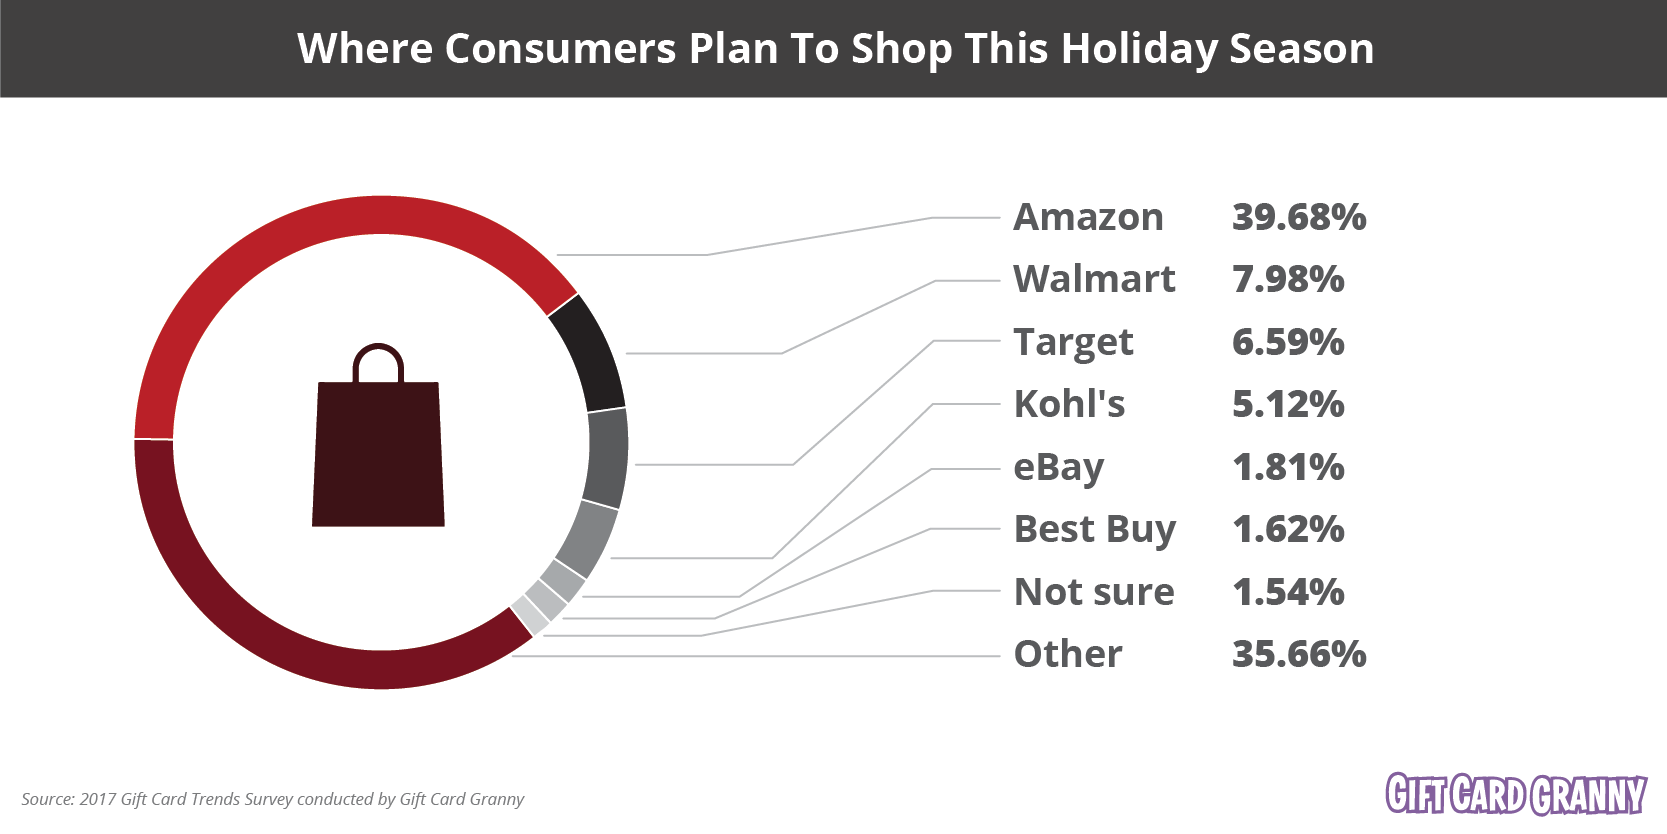 Where Consumers Plan To Shop This Holiday Season